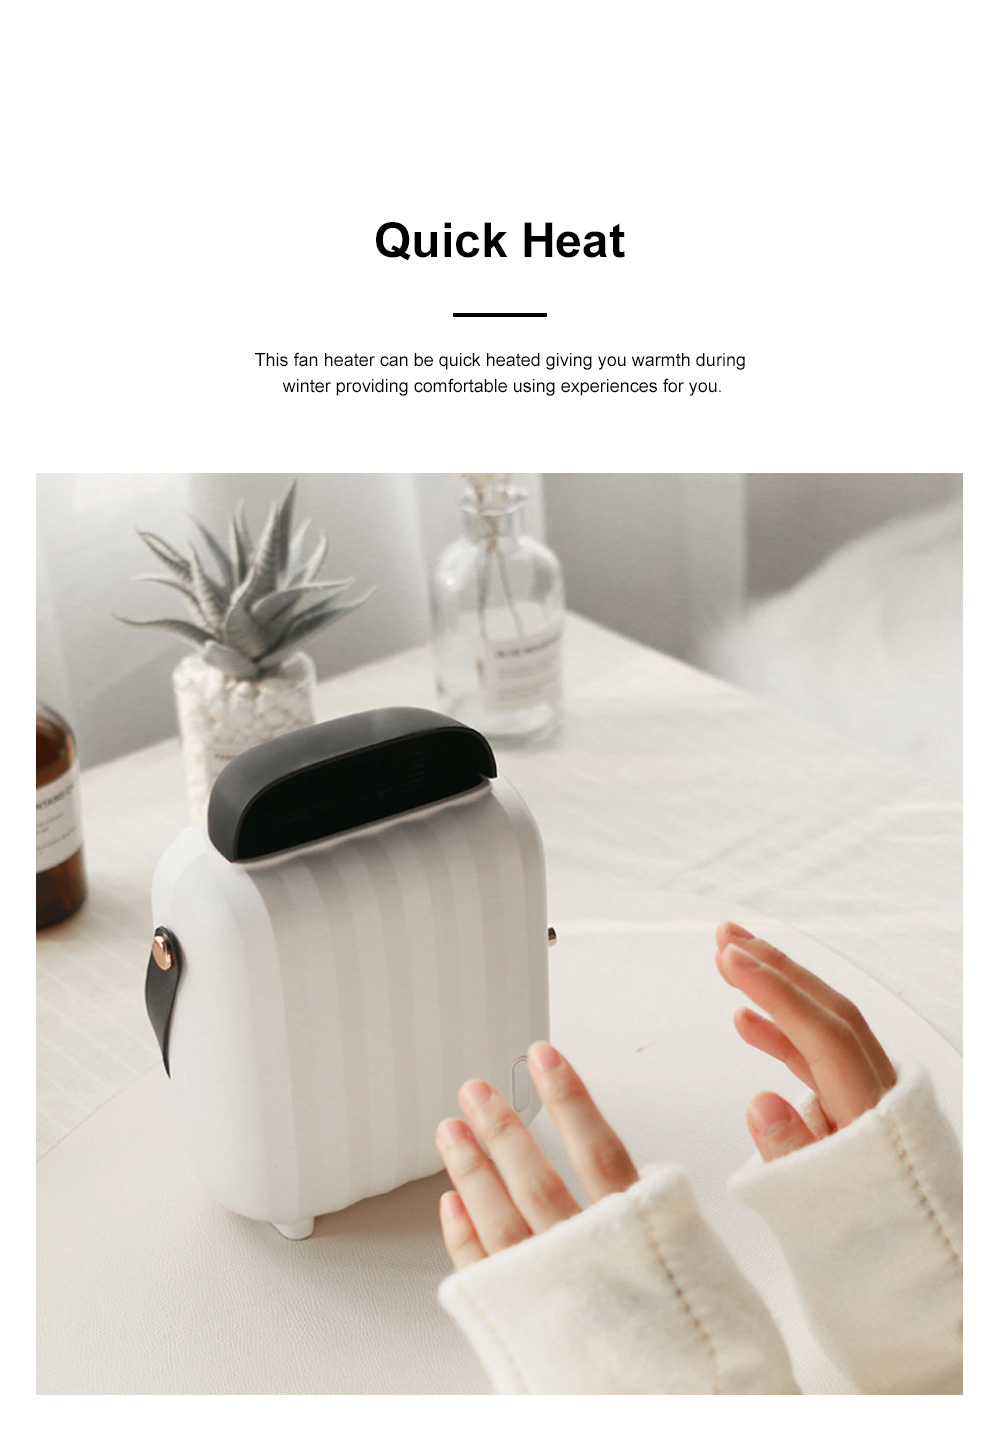 Portable Household Desktop Quick-Heat Fan Heater with Intelligent Power Protection Convenient Handle Flame-retarded Shell 1